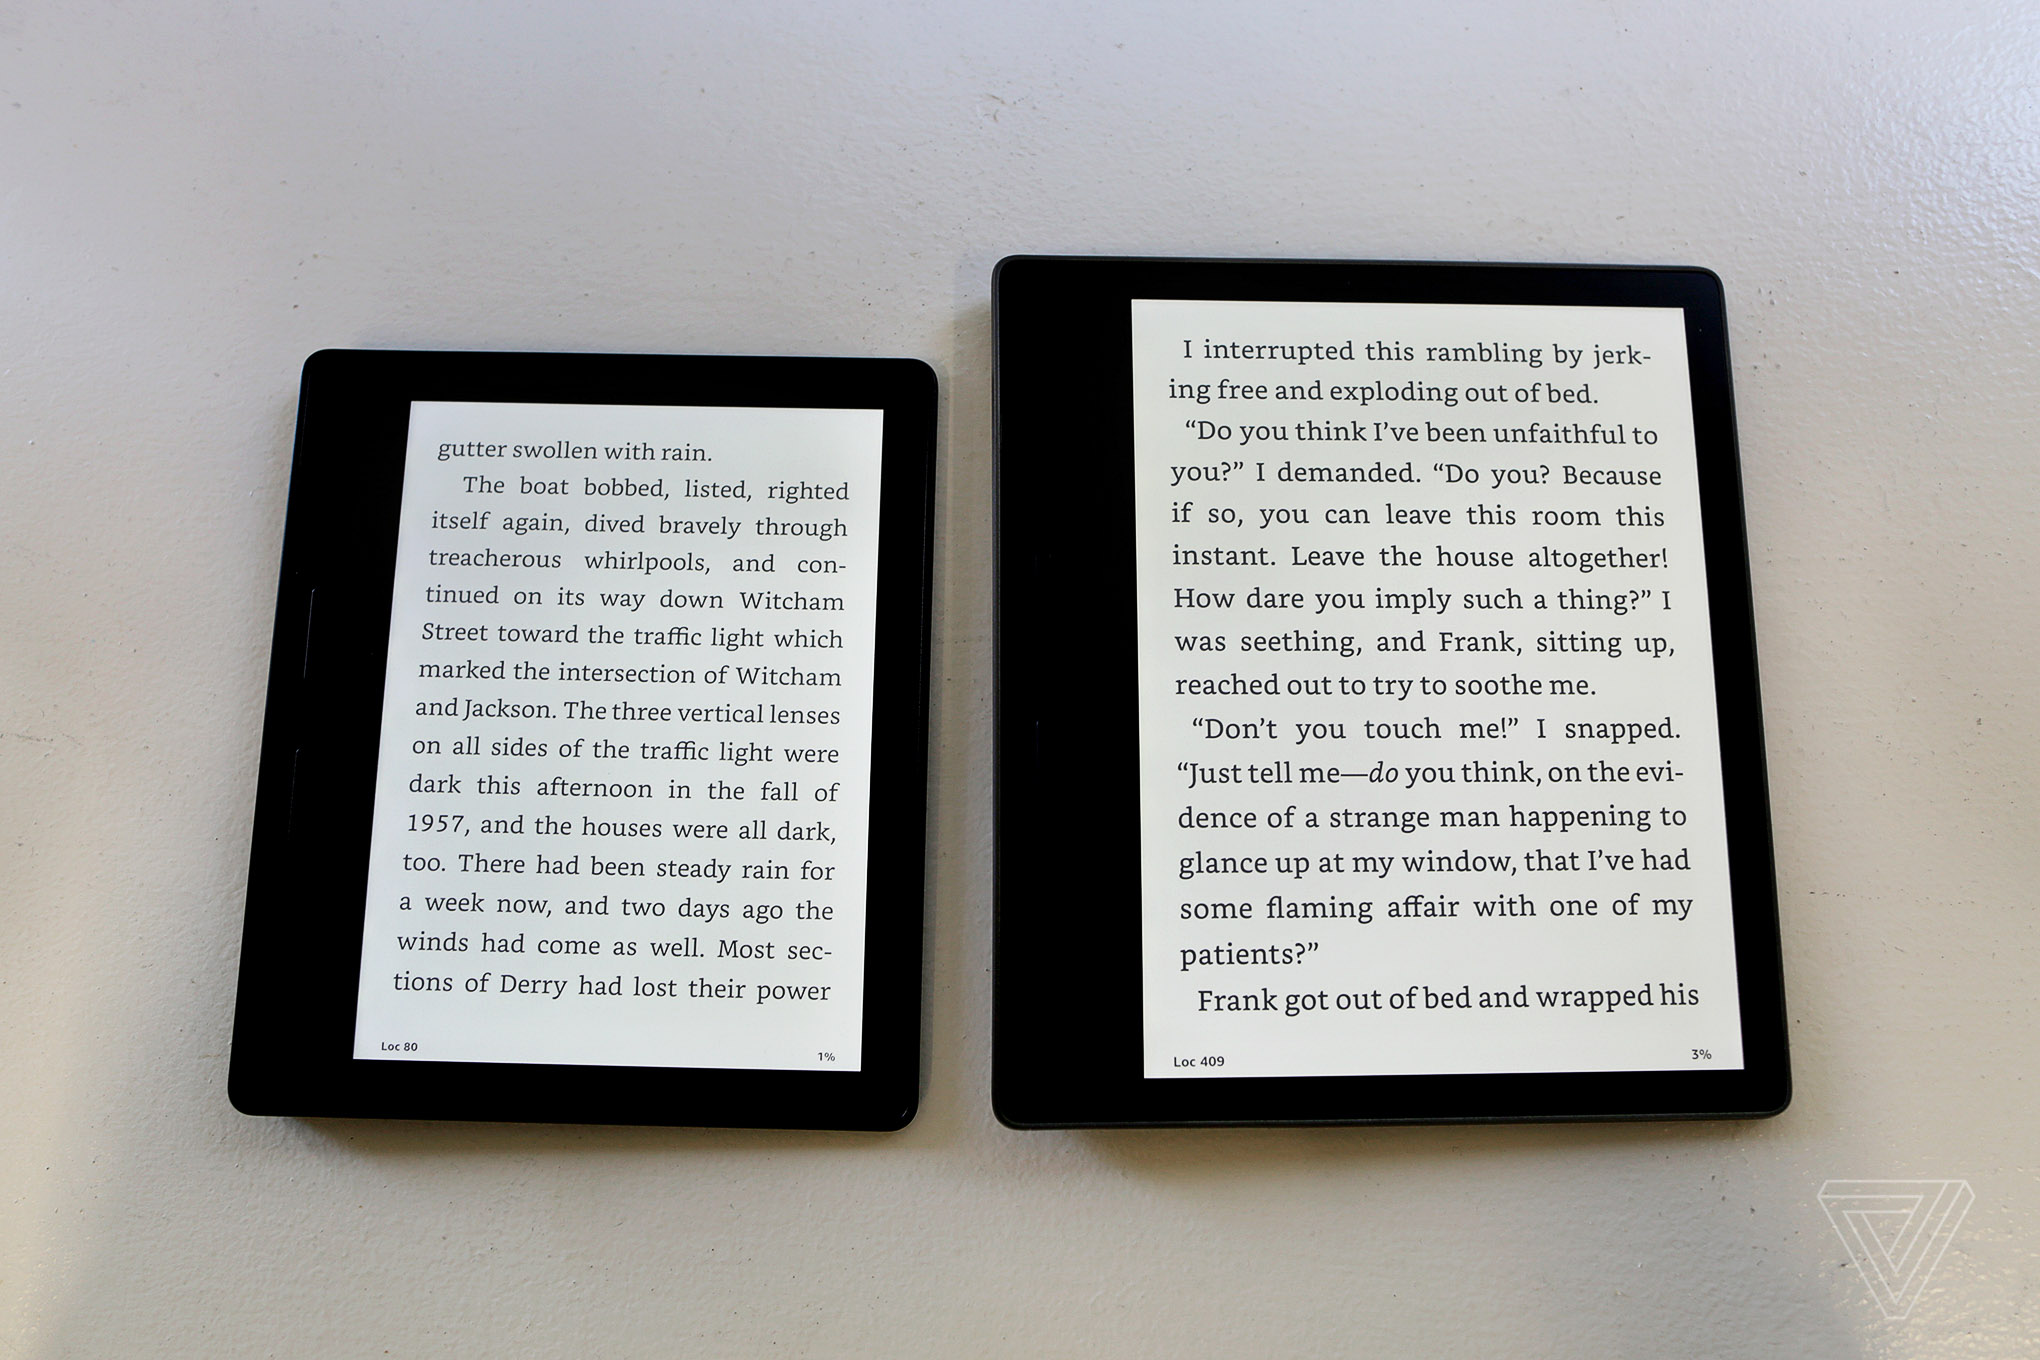 Amazon just introduced a new $250 waterproof Kindle